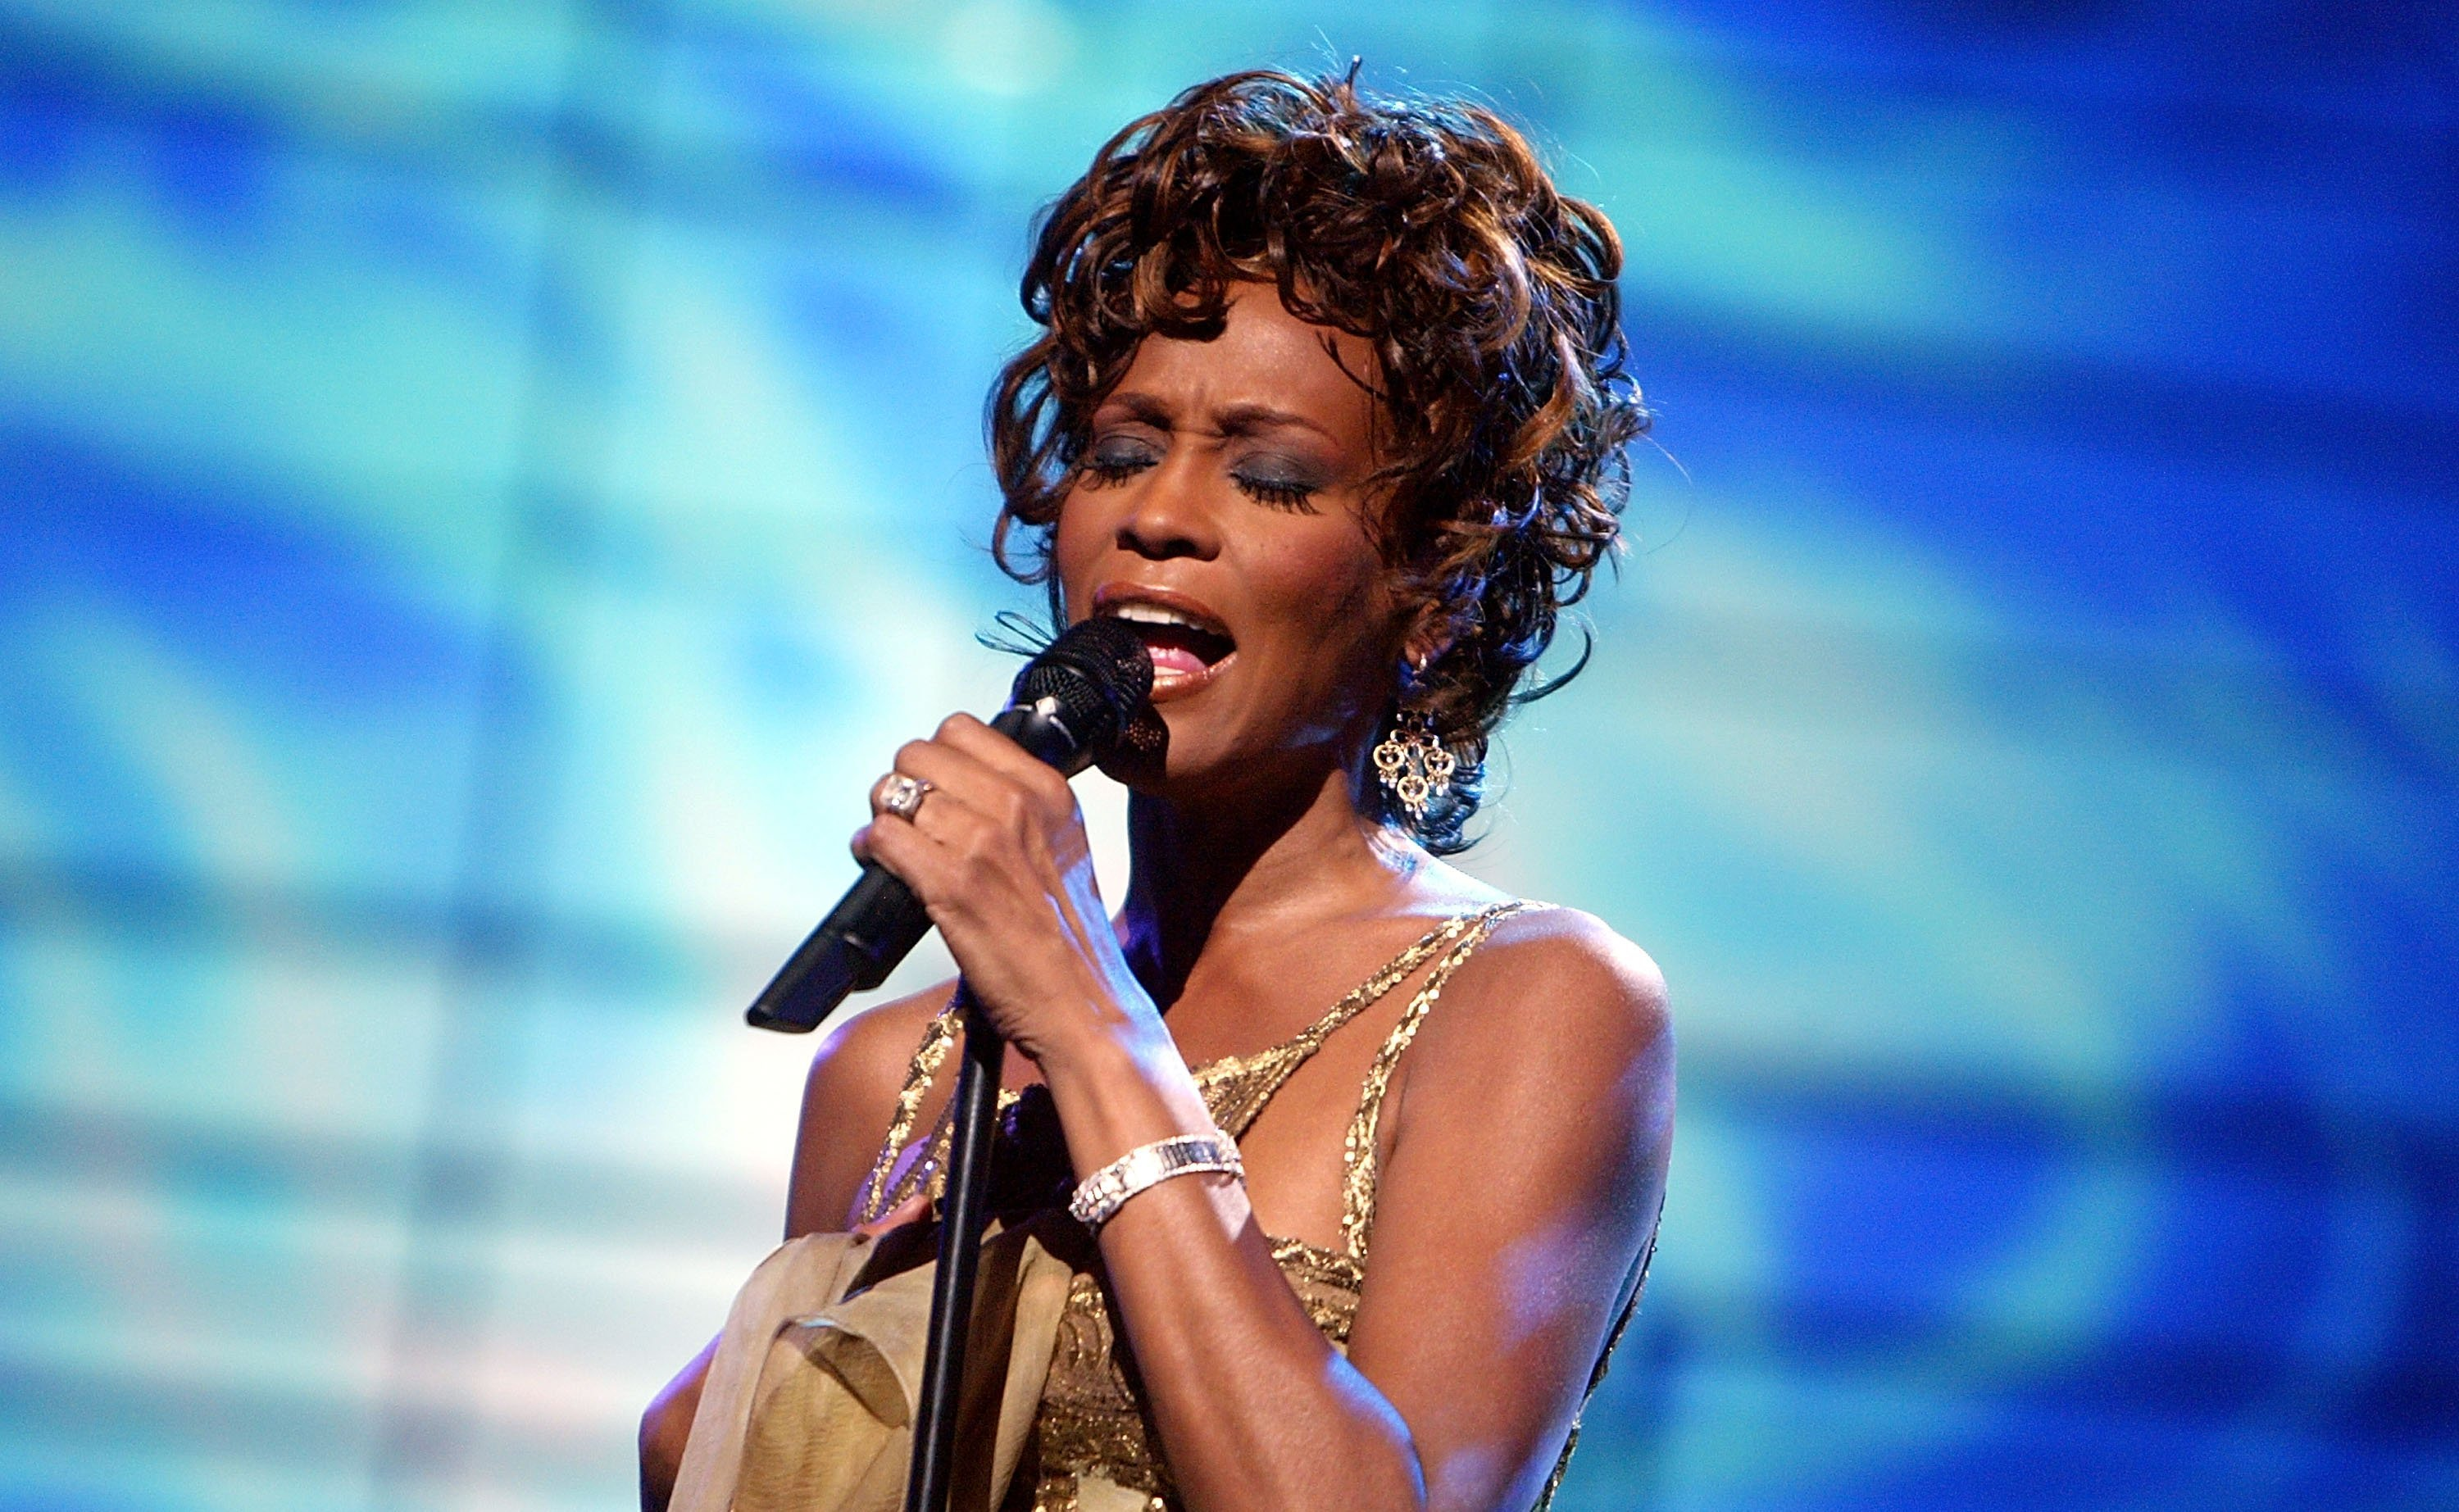 Whitney Houston performing at the 2004 World Music Awards. | Photo: Getty Images